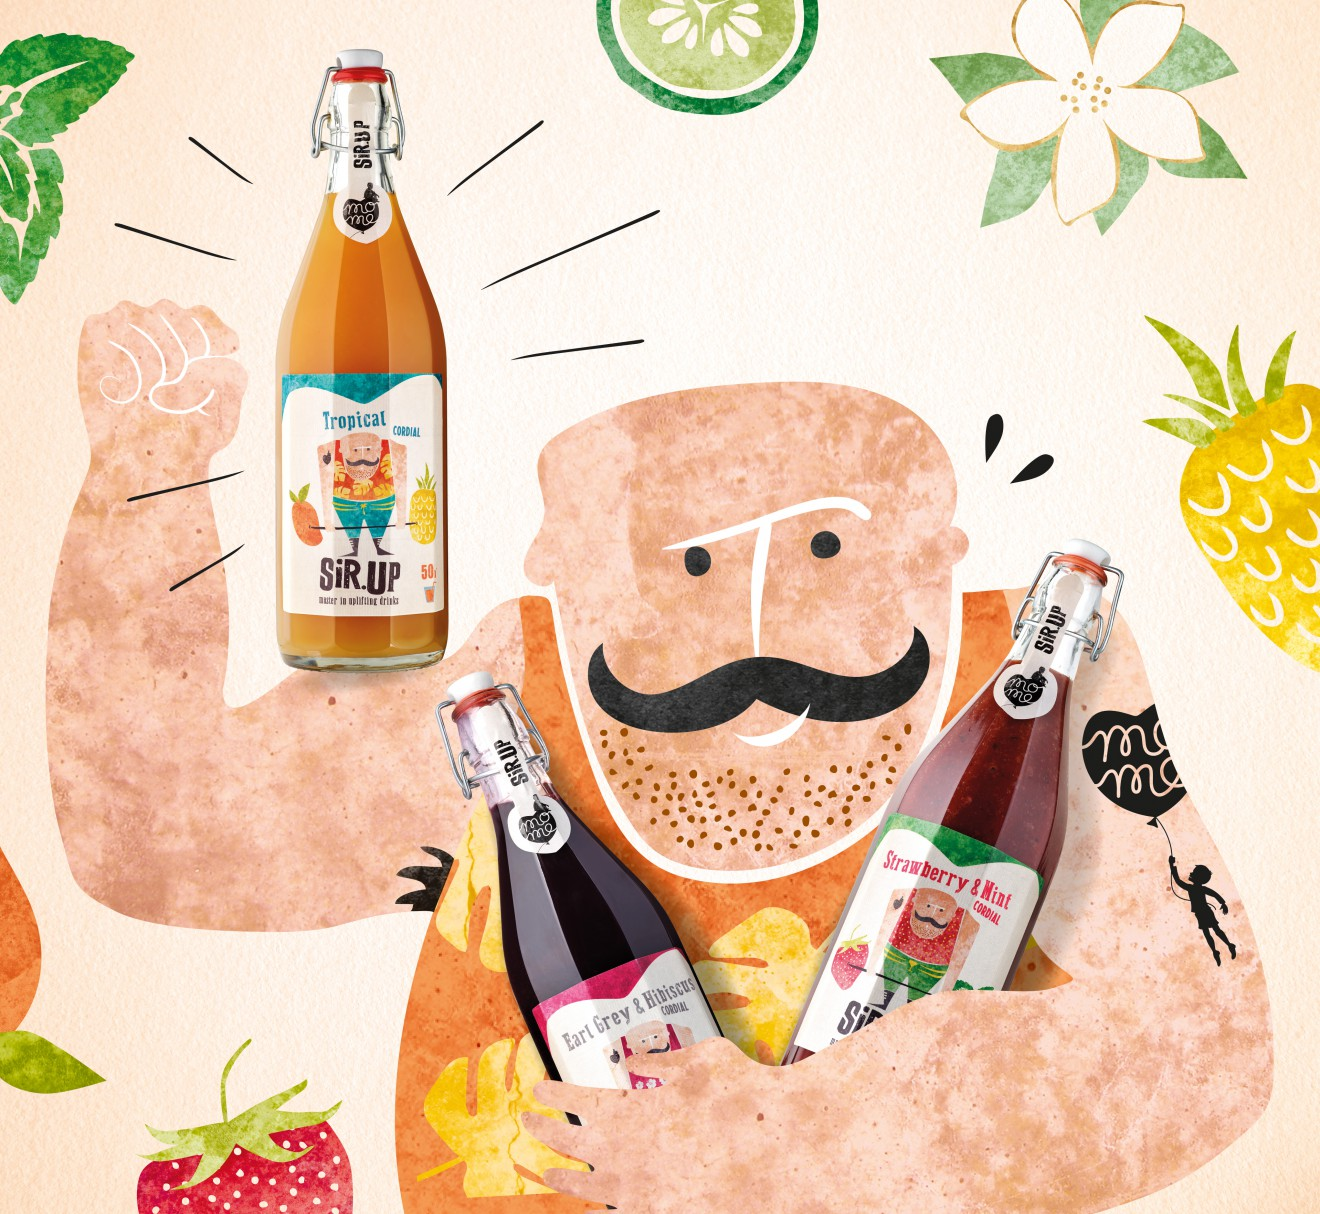 Quatre Mains package design - strong man, cucumber, pineapple, mint, strawberry